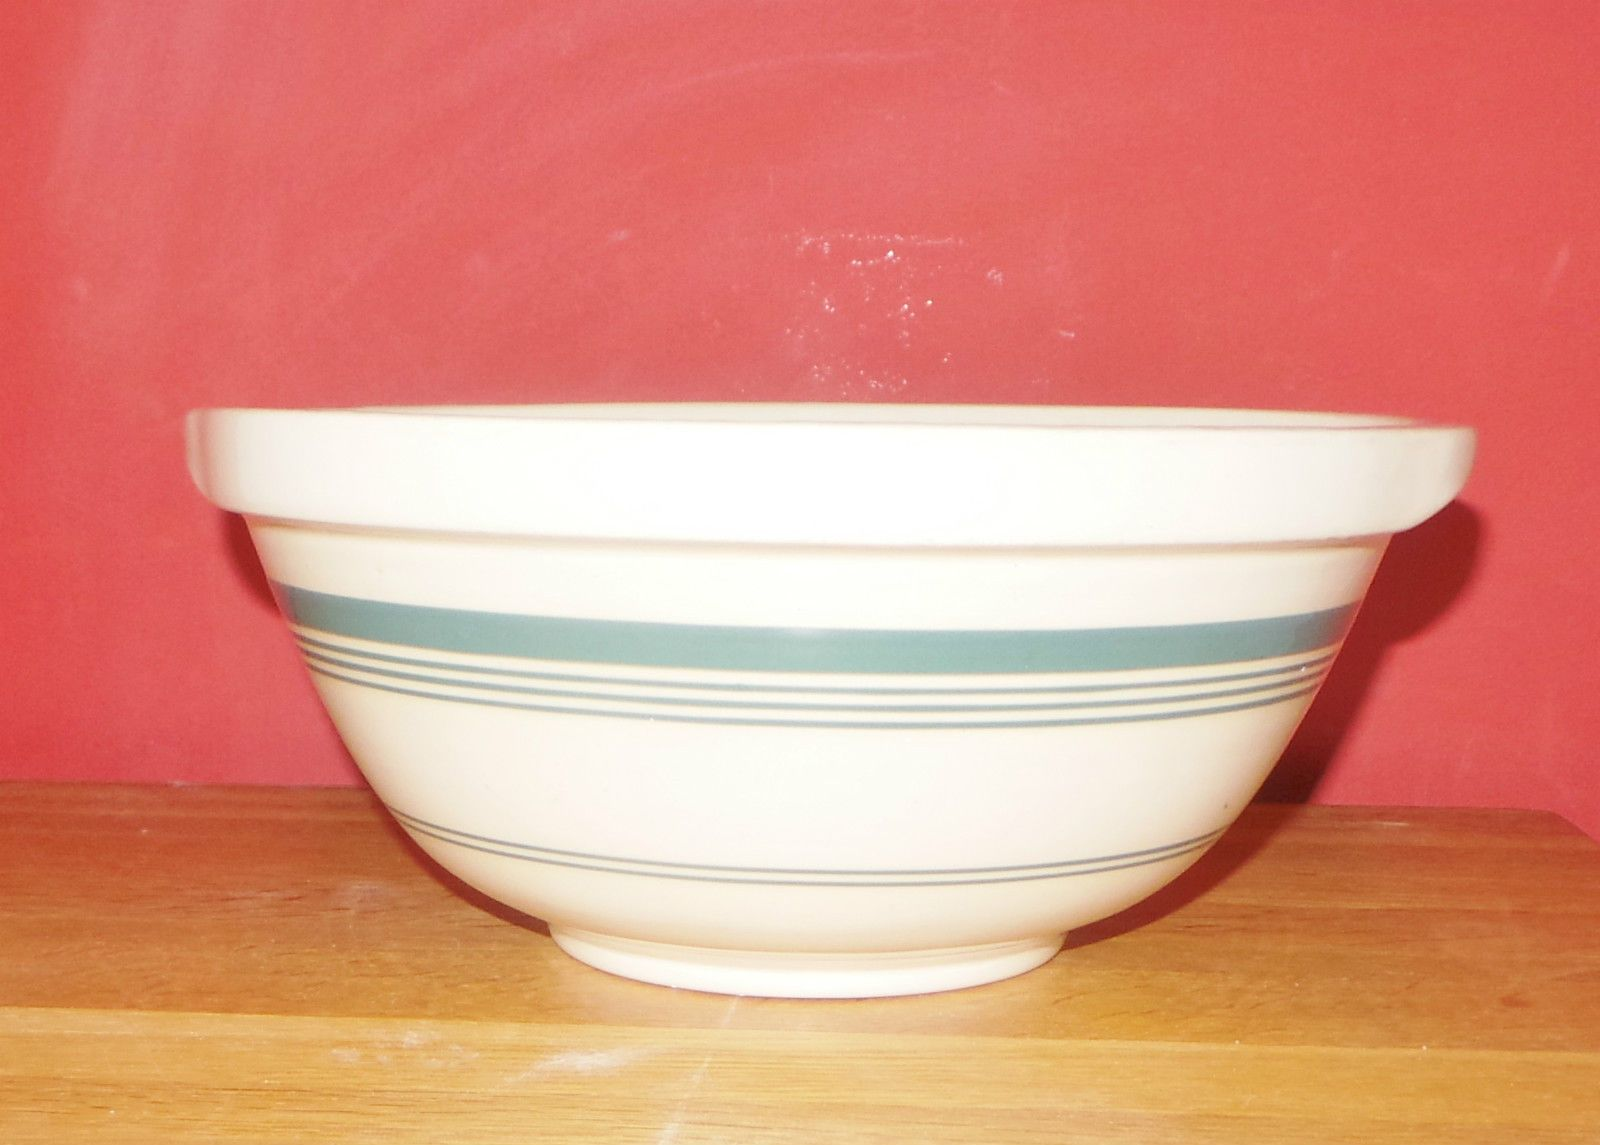 T.G.Green \'Gresley Green\' Mixing Bowl | Gresley Green | Pinterest ...